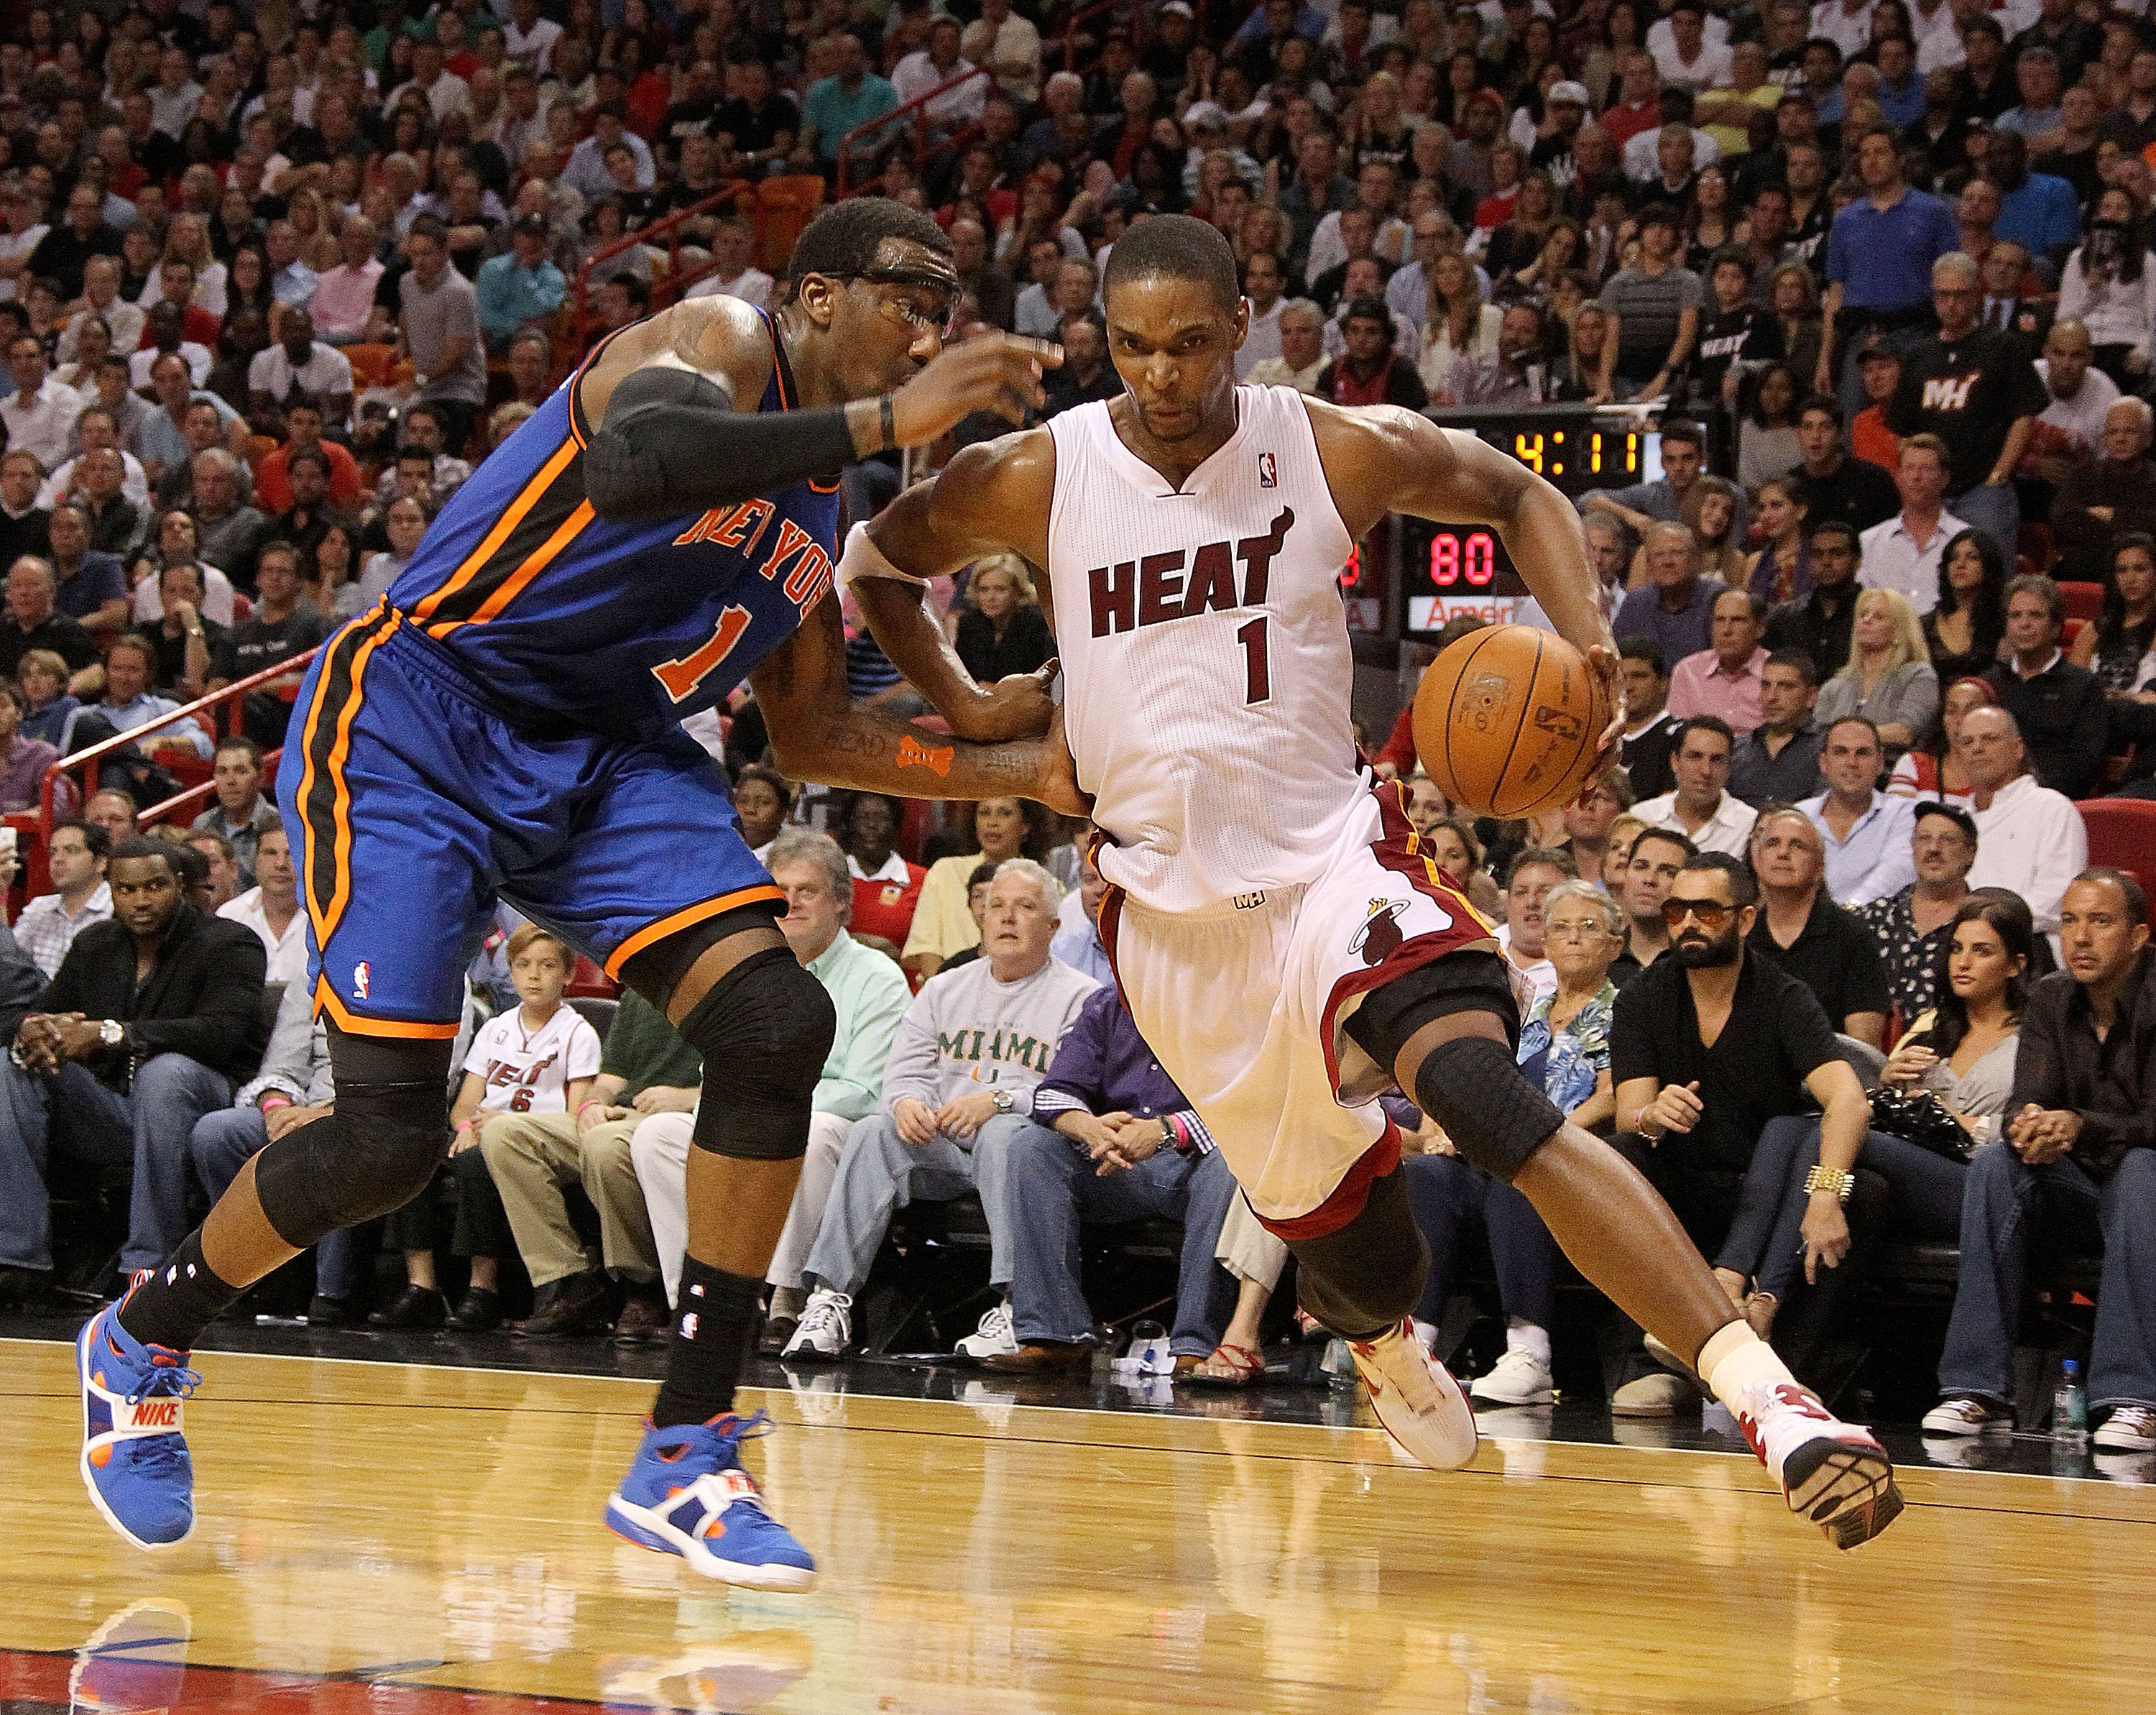 MIAMI, FL - FEBRUARY 27: Chris Bosh #1 of the Miami Heat drives past Amar'e Stoudemire #1 of the New York Knicks during a game at American Airlines Arena on February 27, 2011 in Miami, Florida. NOTE TO USER: User expressly acknowledges and agrees that, by